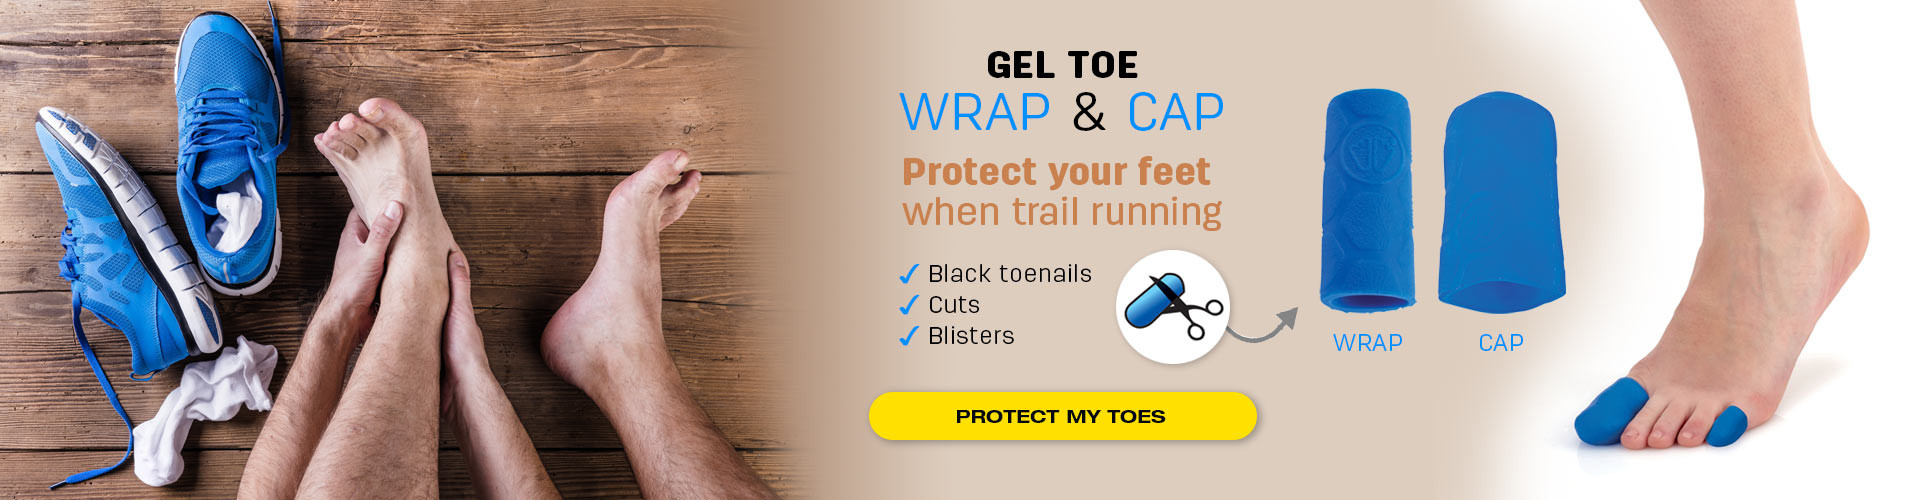 Protect your toes when trail running